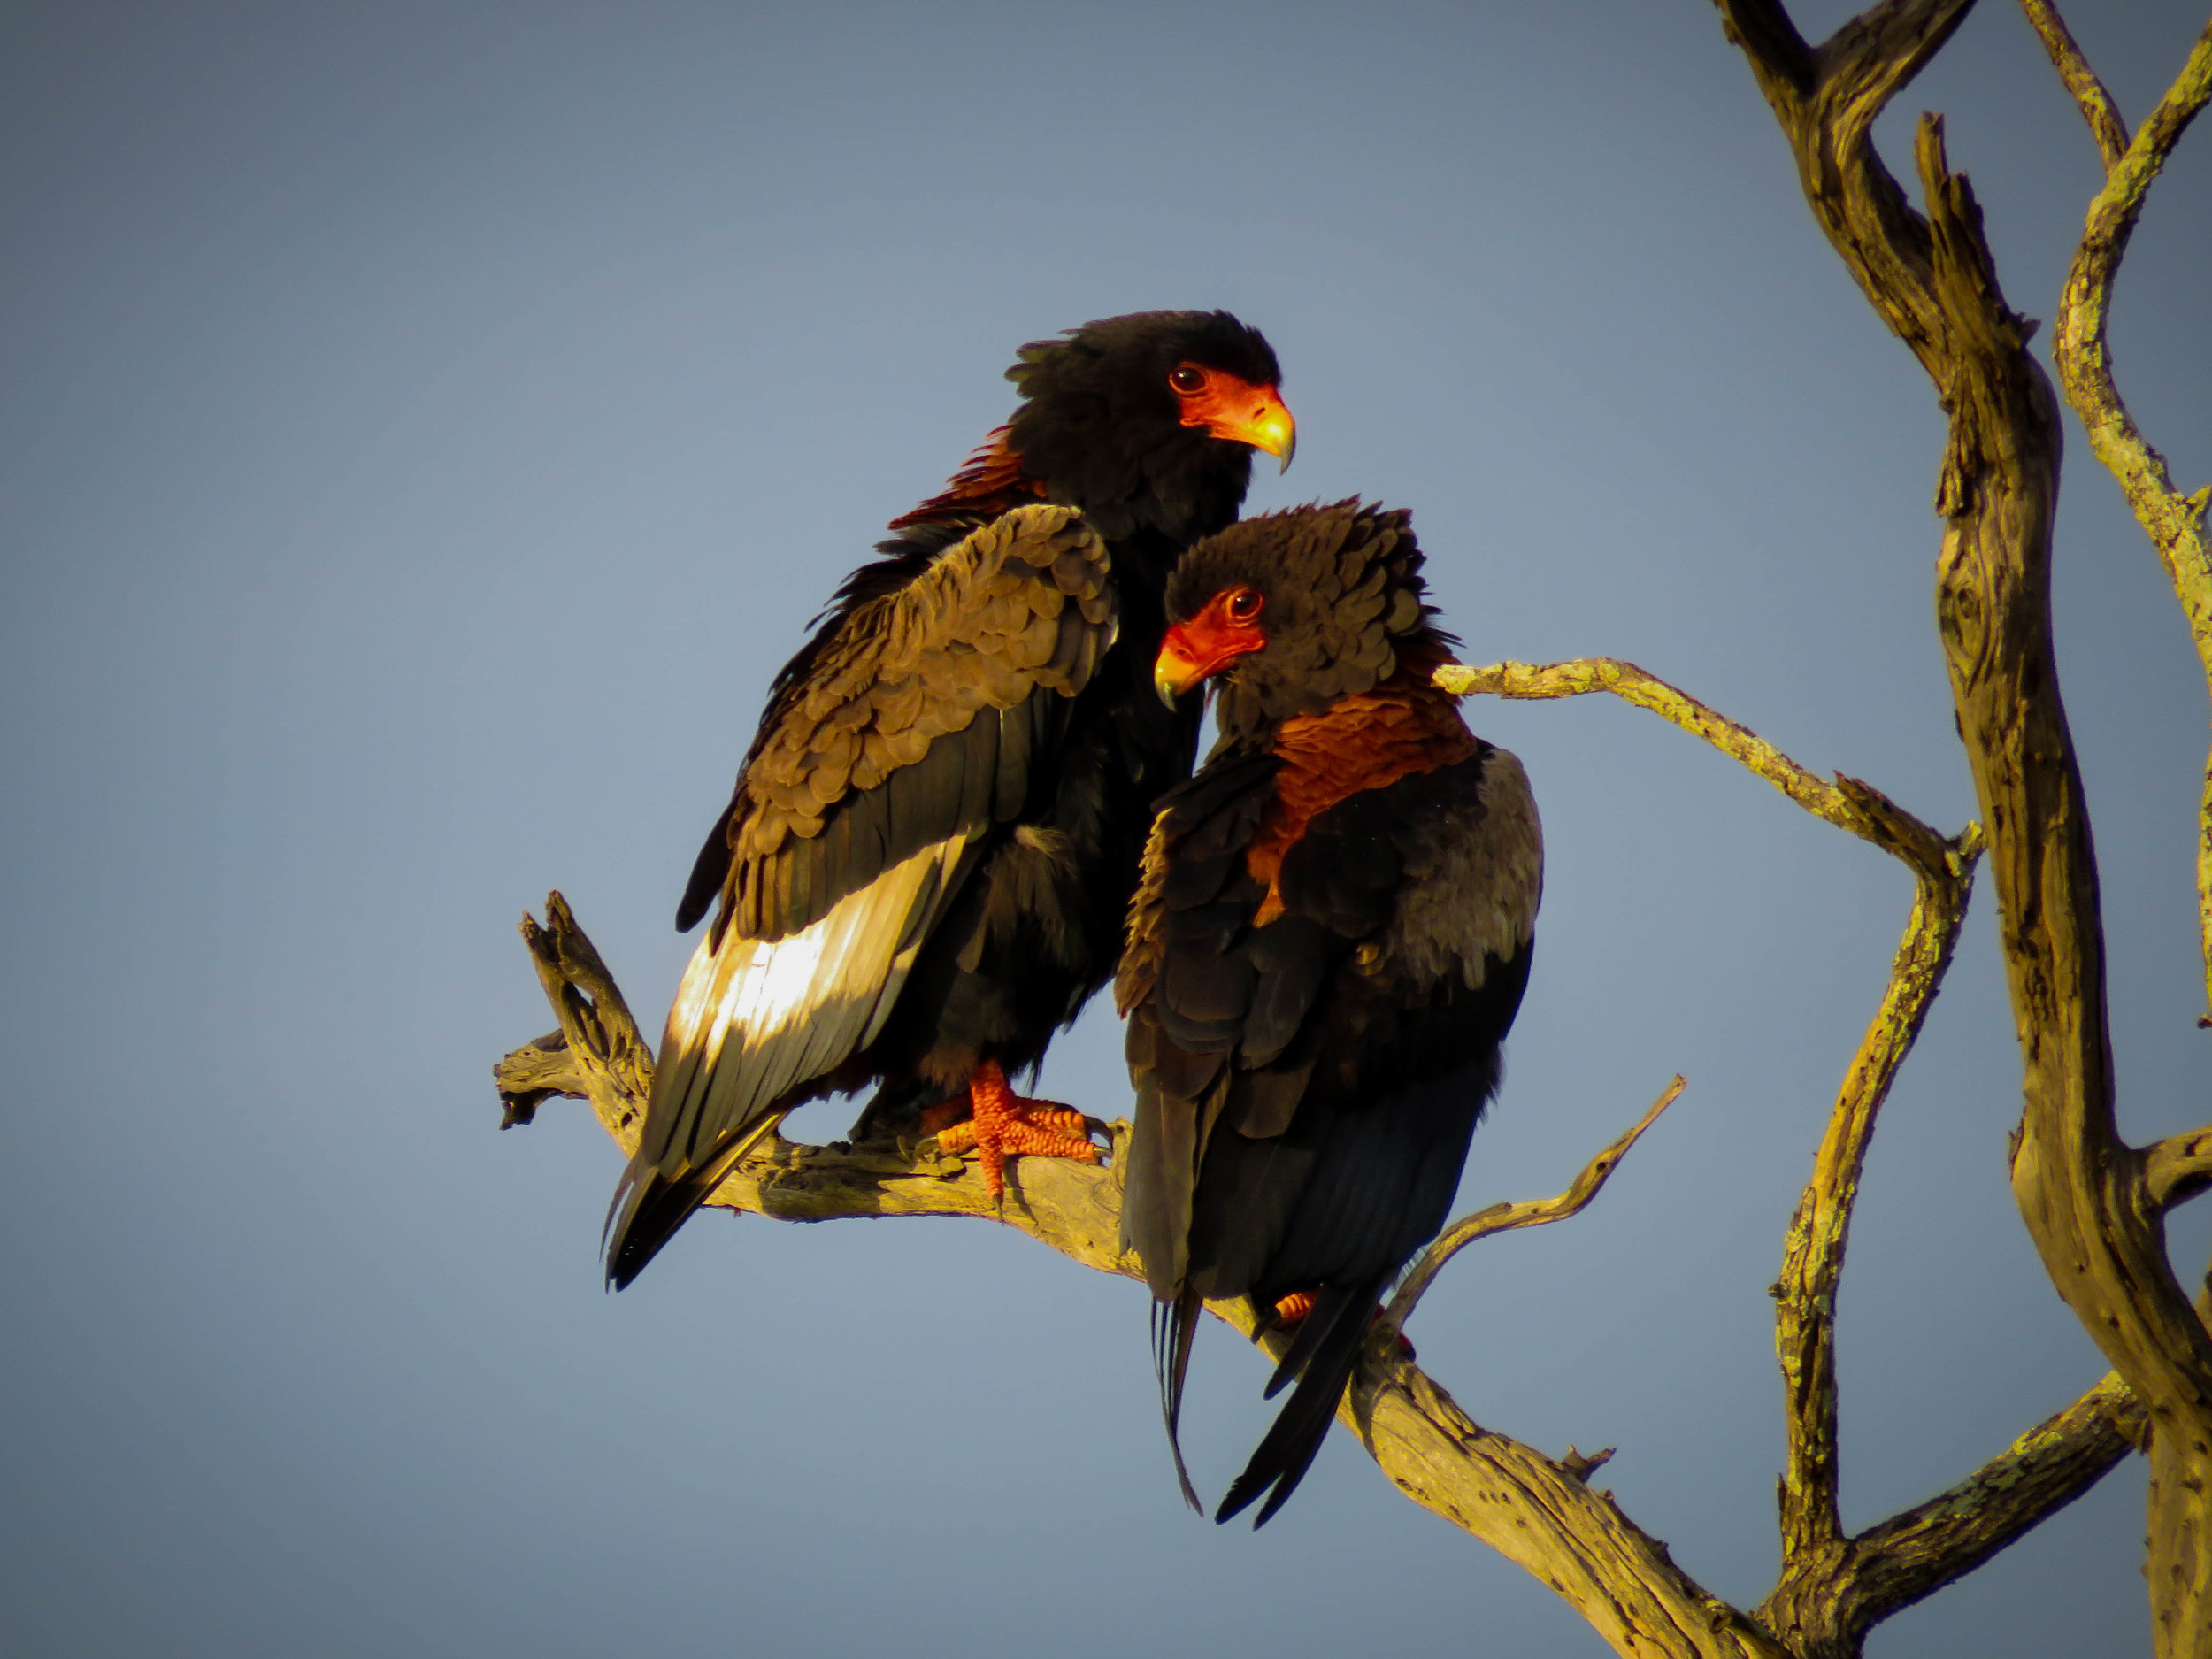 A PERFECT PAIR: Two beautiful Bateleur eagles posing for us, the female is on the left and male is on the right.